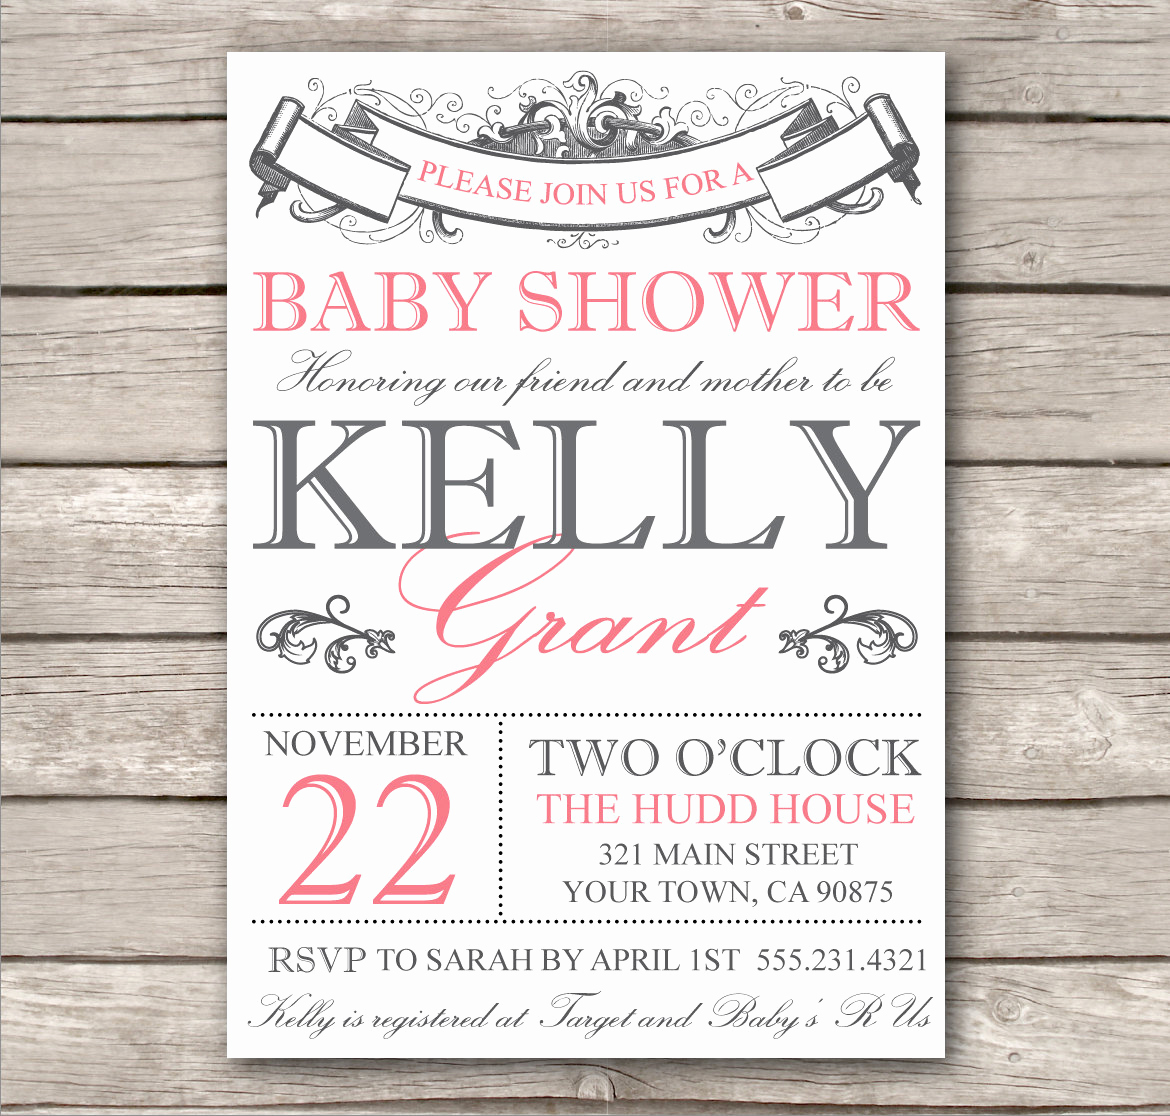 Printable Bridal Shower Invitation Templates Luxury Bridal Shower Invitation or Baby Shower Invitation by